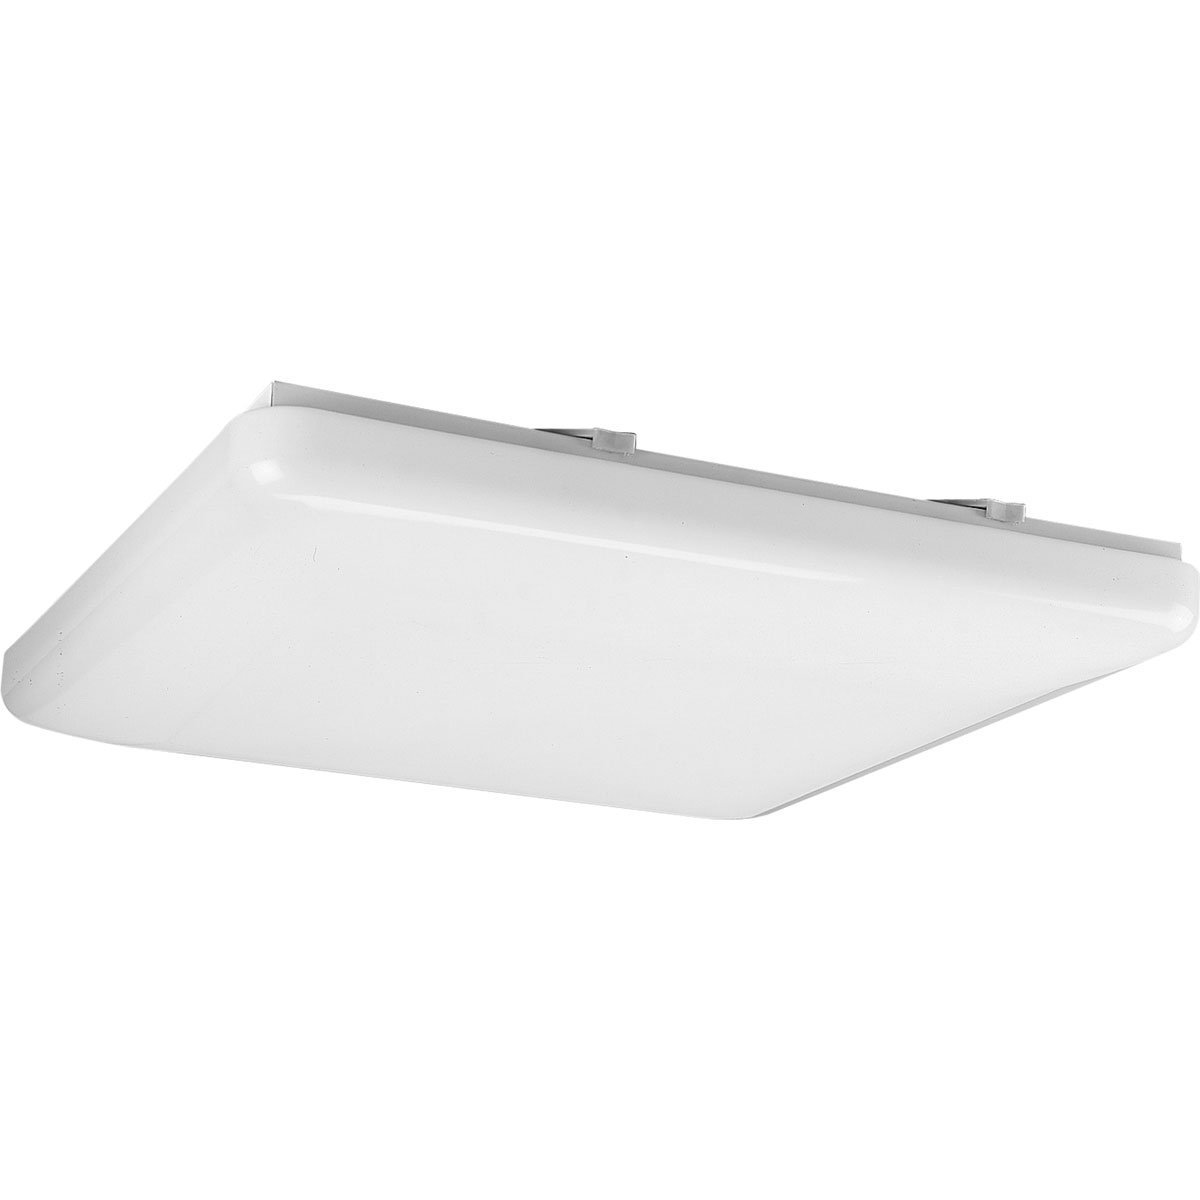 Progress Lighting P7380-30 Energy Efficient Long-Lasting Lamps with Acrylic Diffuser and Standard 120 Volt Normal Power Factor Ballasts That Can Be Wall Mounted UL Listed For Damp Locations, White